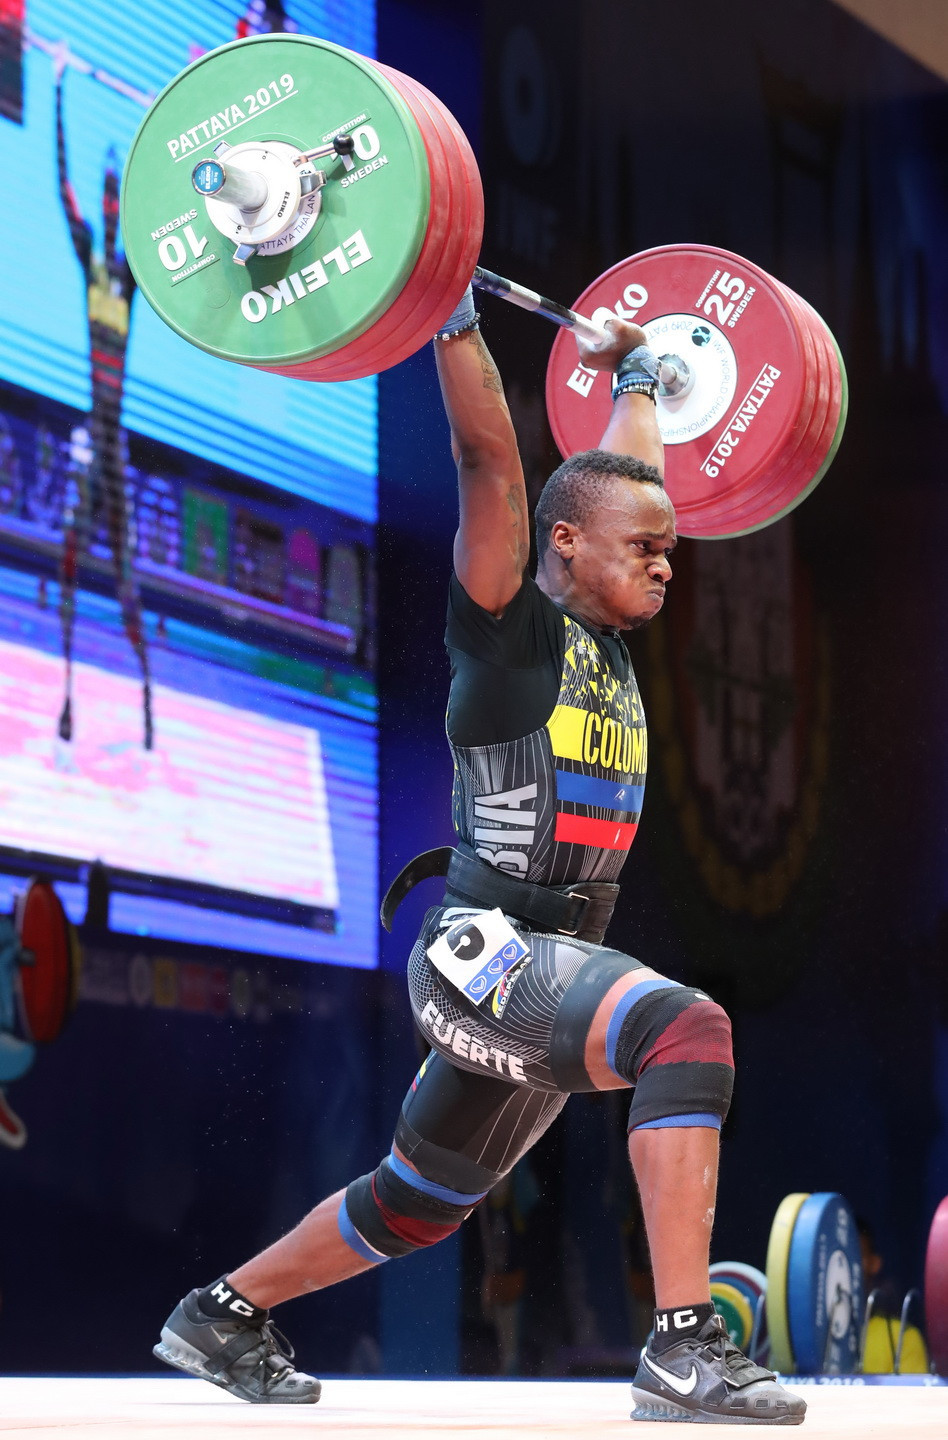 The overall bronze medallist was Colombia's Brayan Santiago Rodallegas Carvajal ©IWF